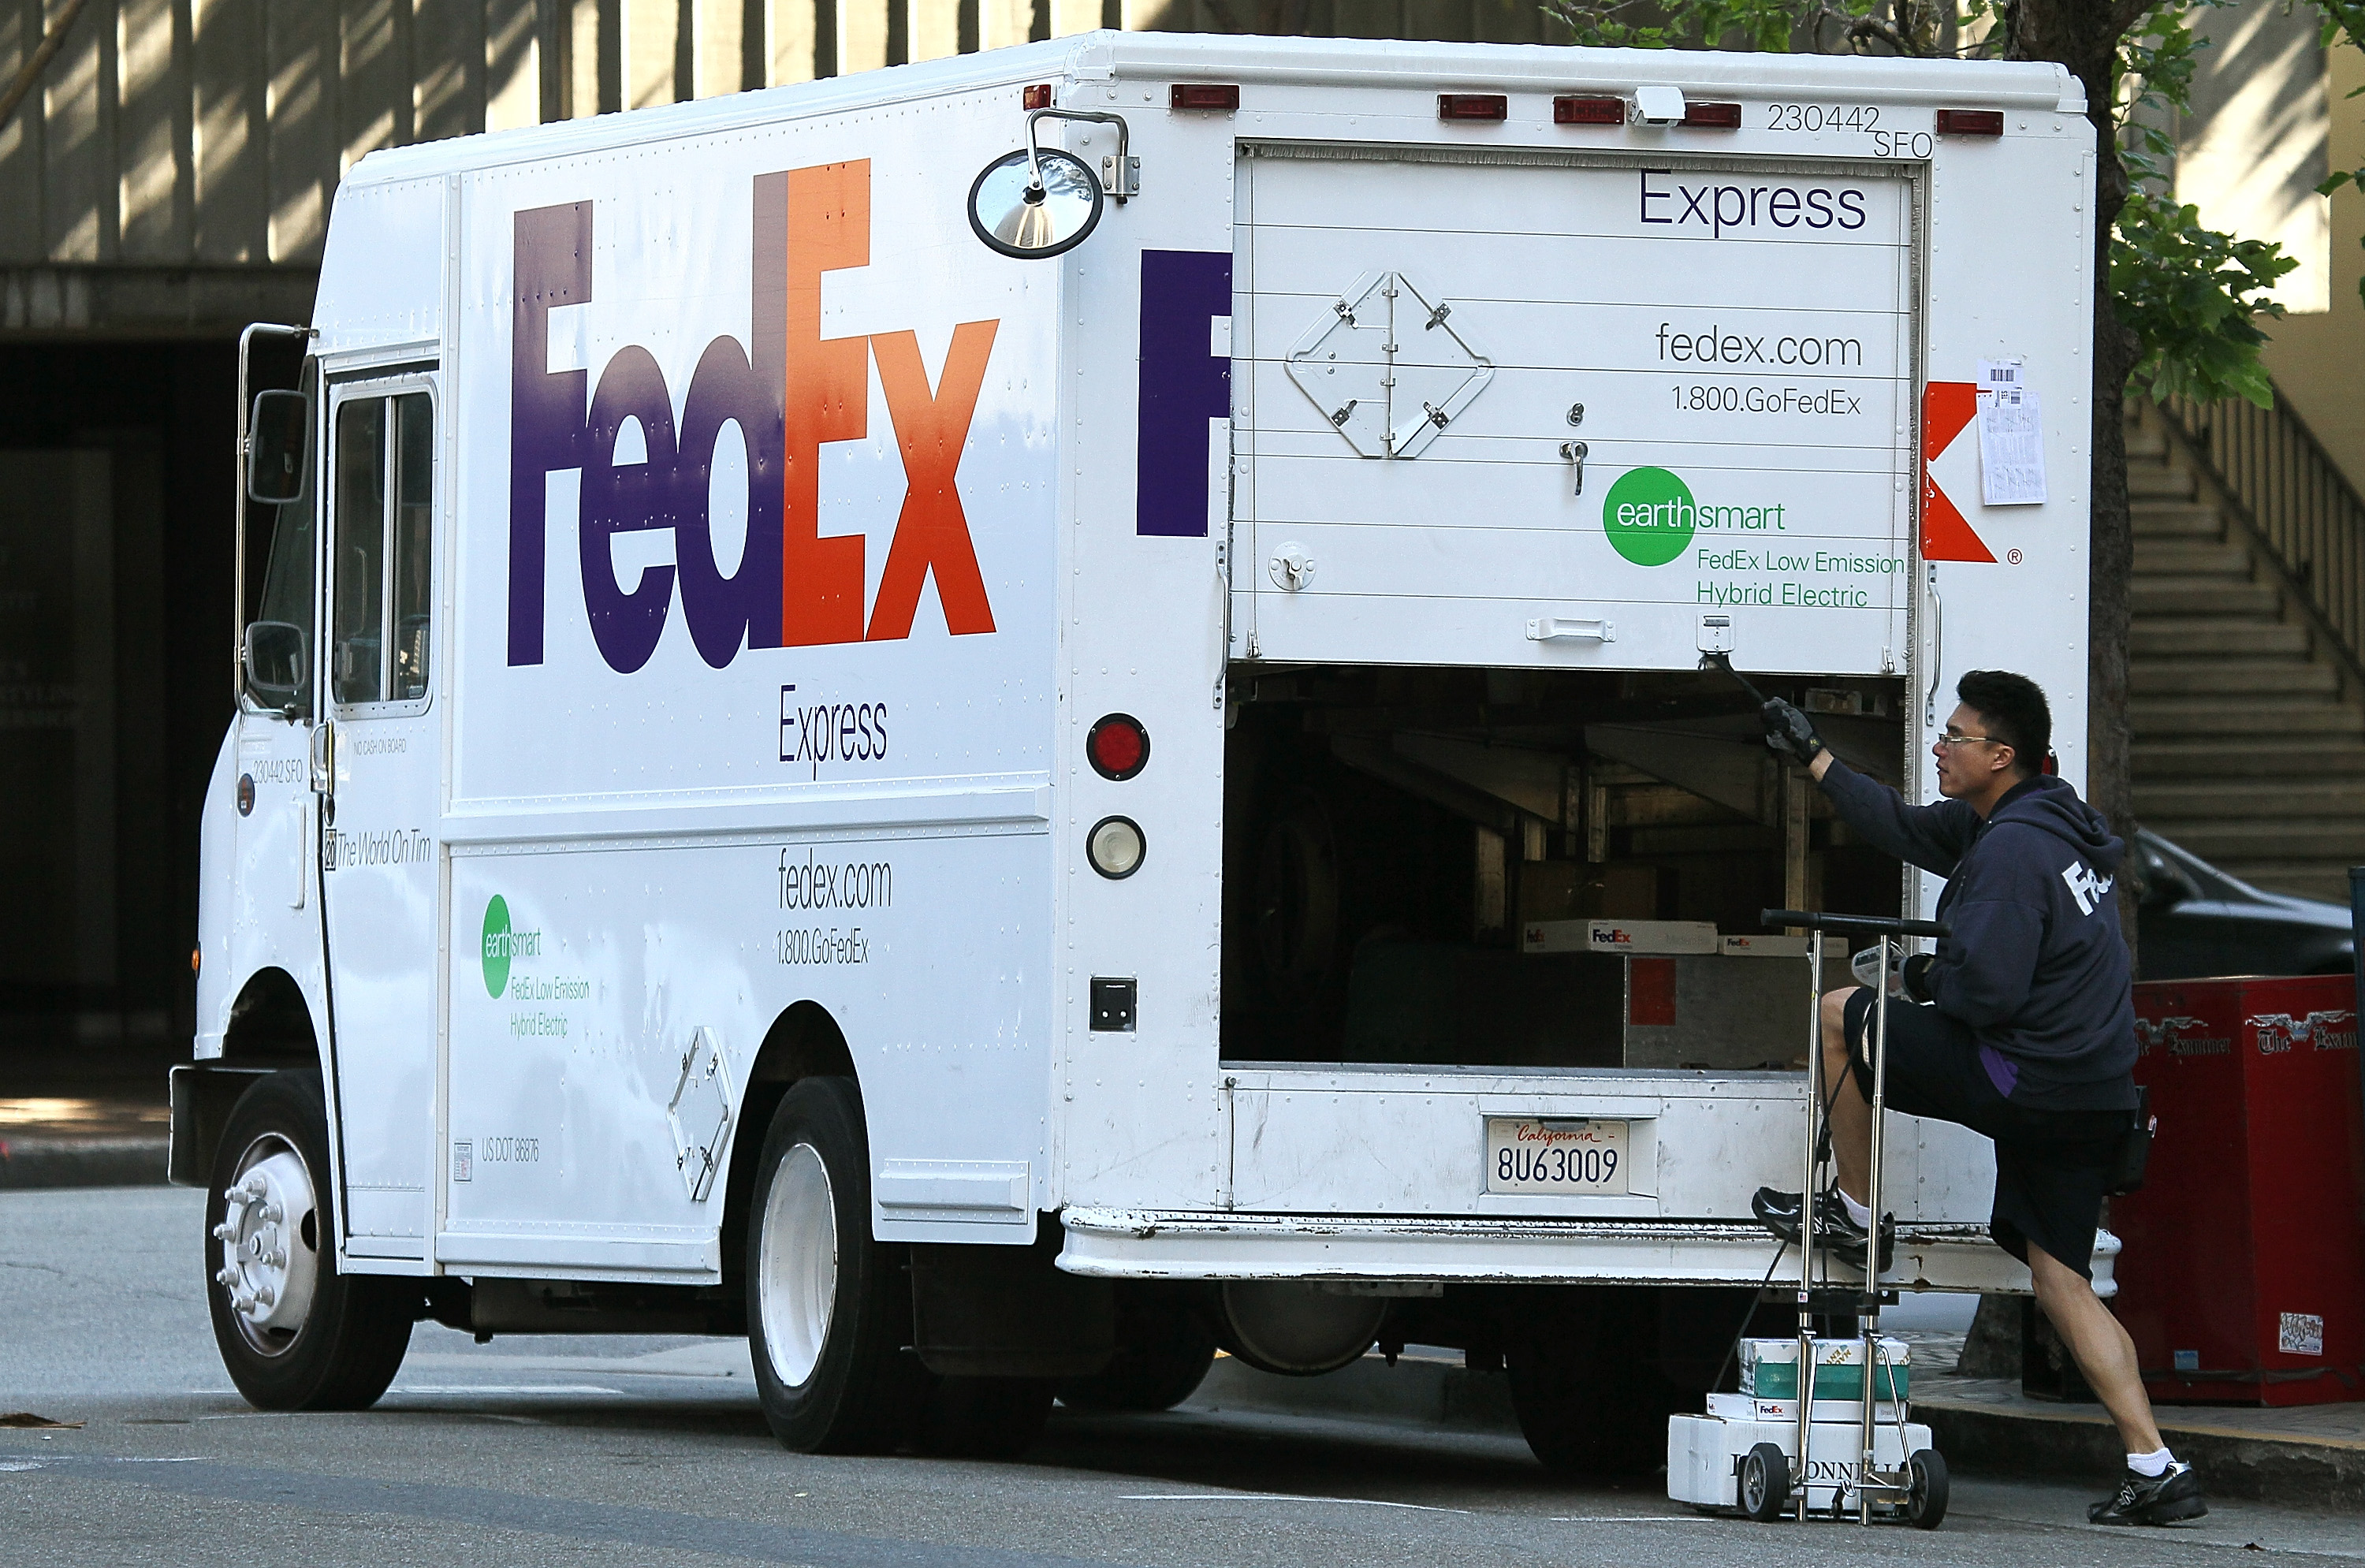 SAN FRANCISCO, CA - JUNE 22:  A FedEx worker steps out of his delivery truck on June 22, 2011 in San Francisco, California.  FedEx Corp. reported a strong fourth quarter with earnings of $558 million, or $1.75 per share compared to $419 million, or $1.33 per share one year ago.  (Photo by Justin Sullivan/Getty Images)